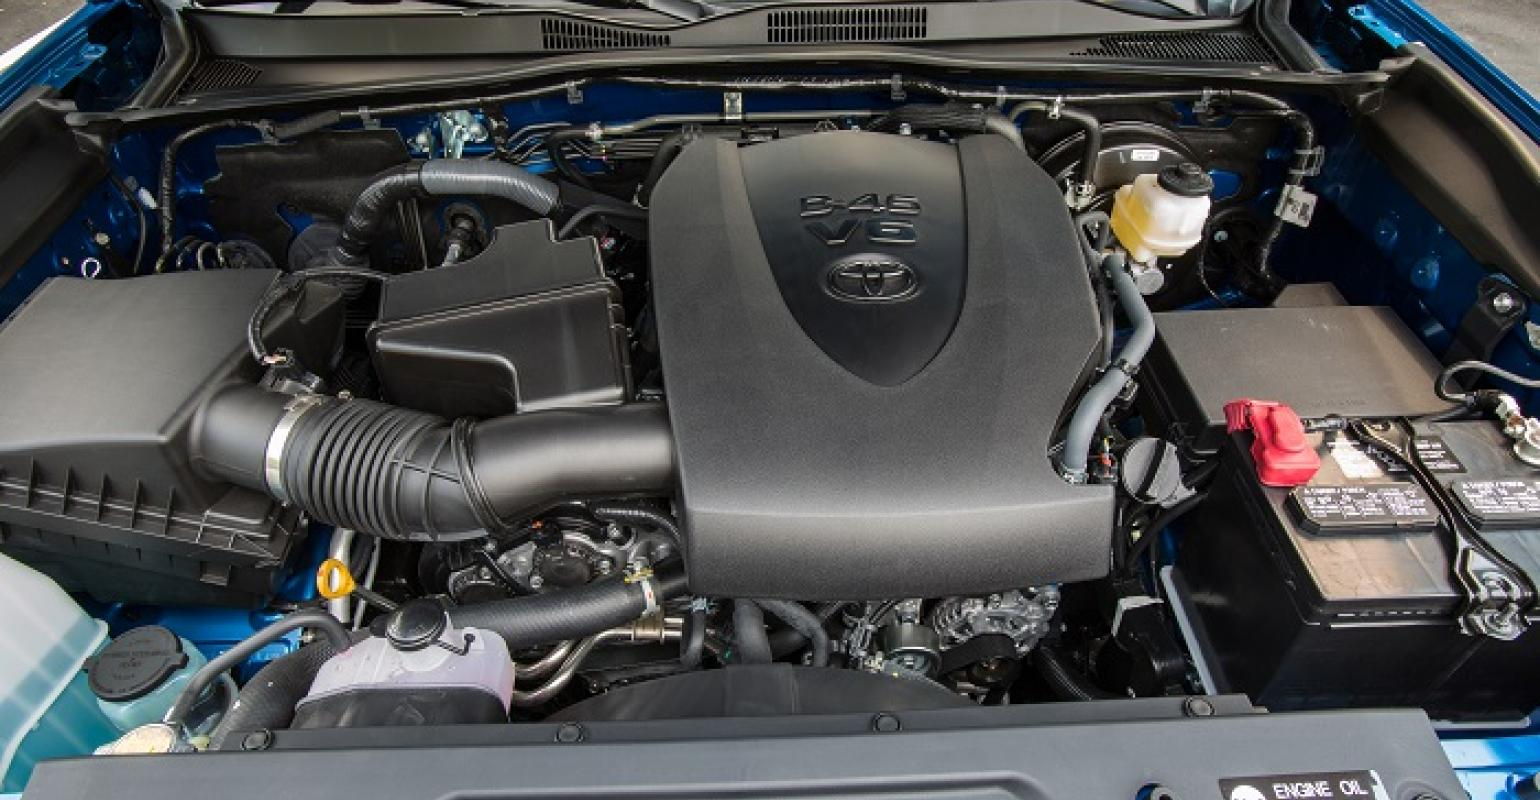 medium resolution of toyota advances d4s with self cleaning feature on tacoma